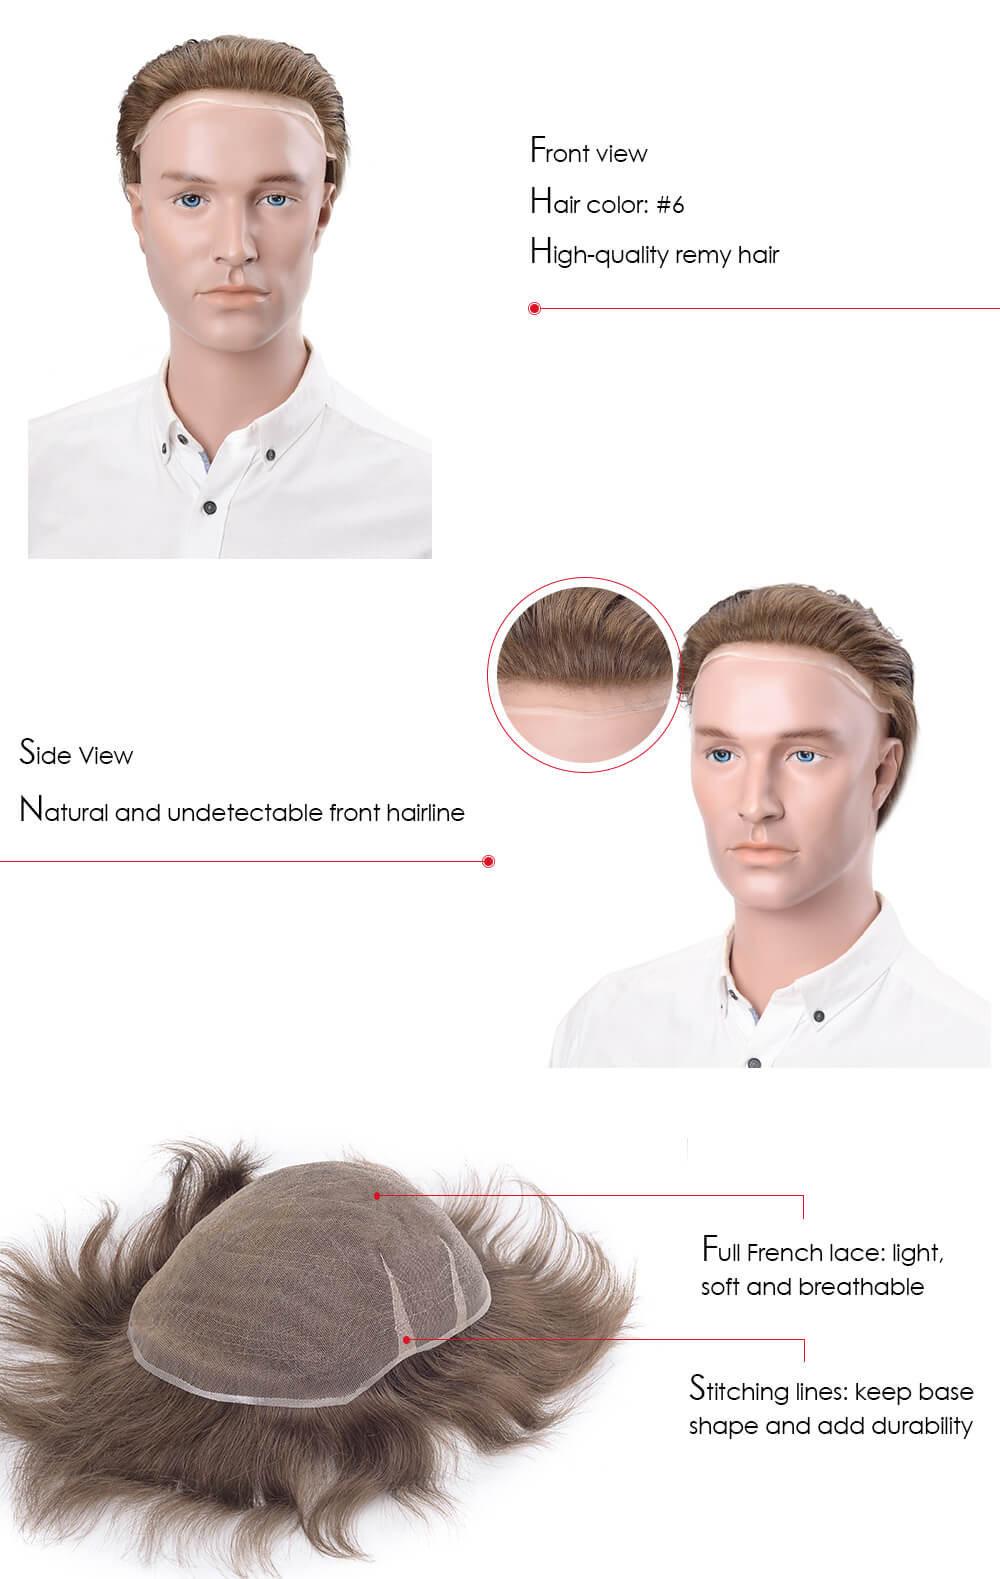 French Lace Hair System for men with remy hair